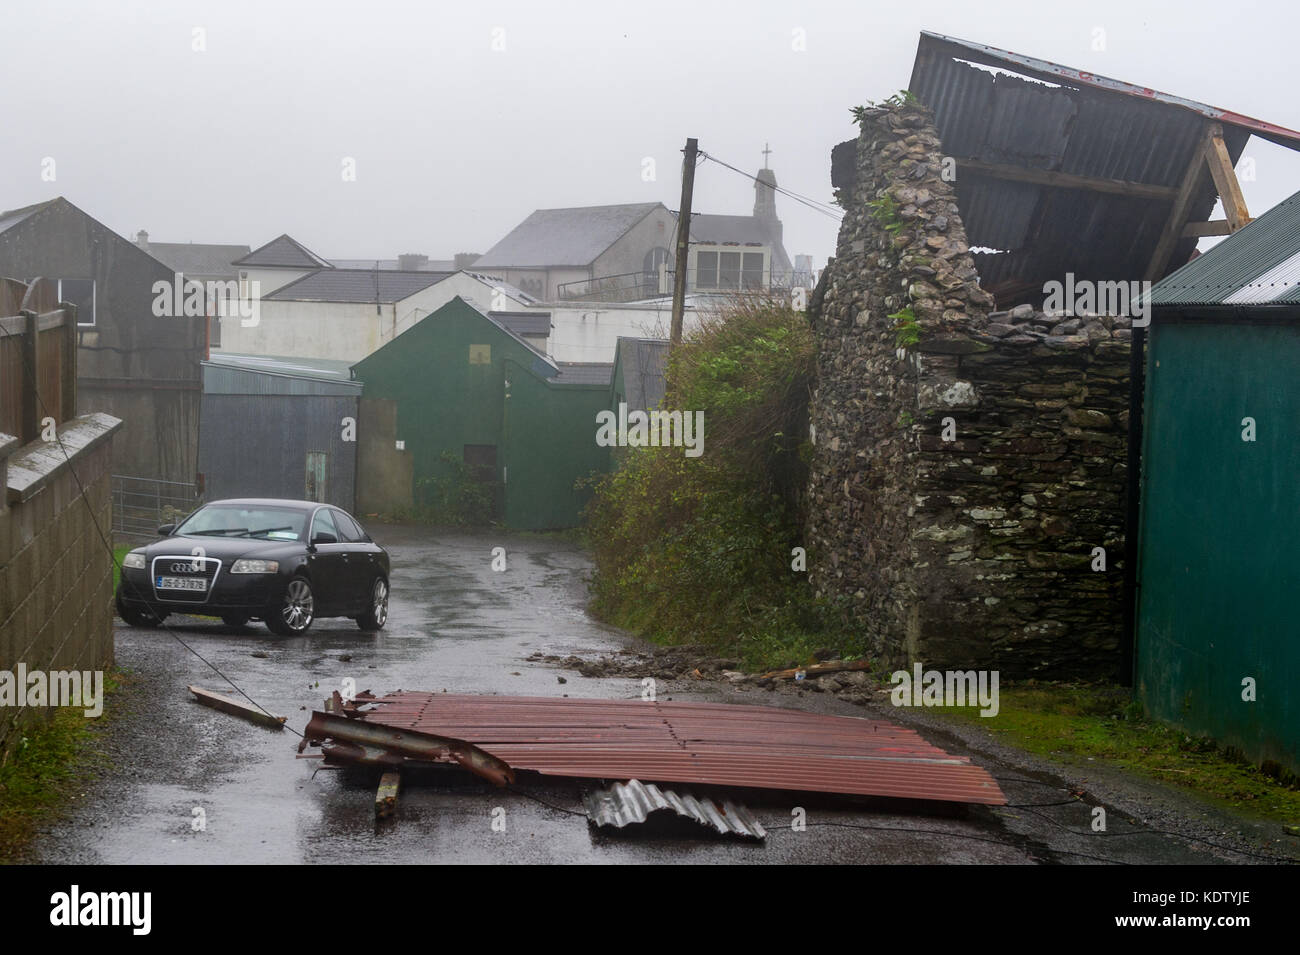 schull-ireland-16th-oct-2017-uk-weather-ex-hurricane-ophelia-hits-KDTYJE.jpg